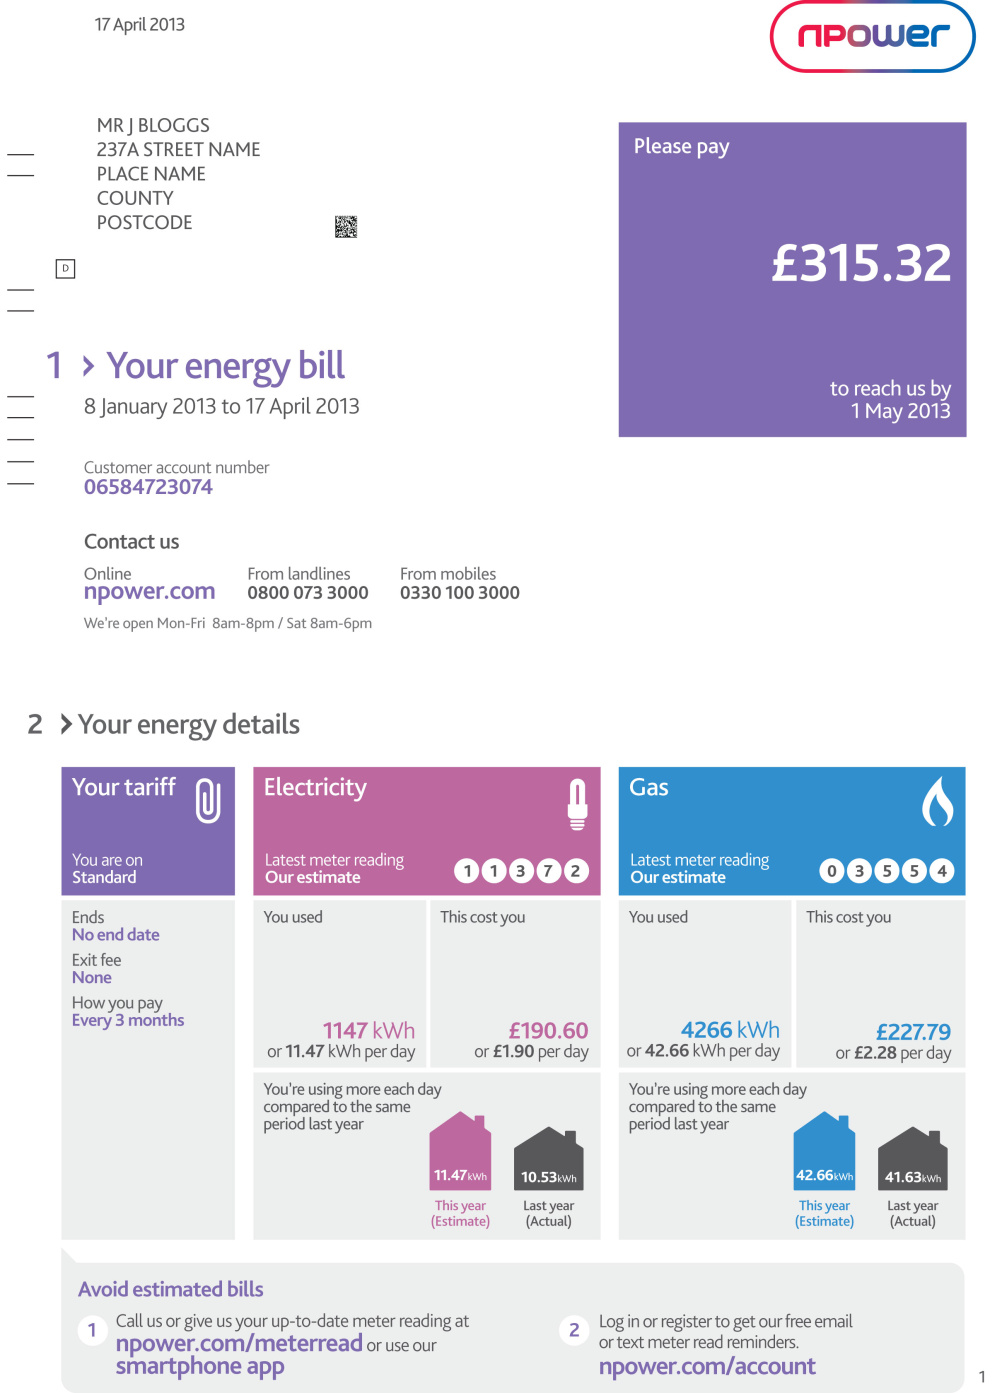 The new Npower bill